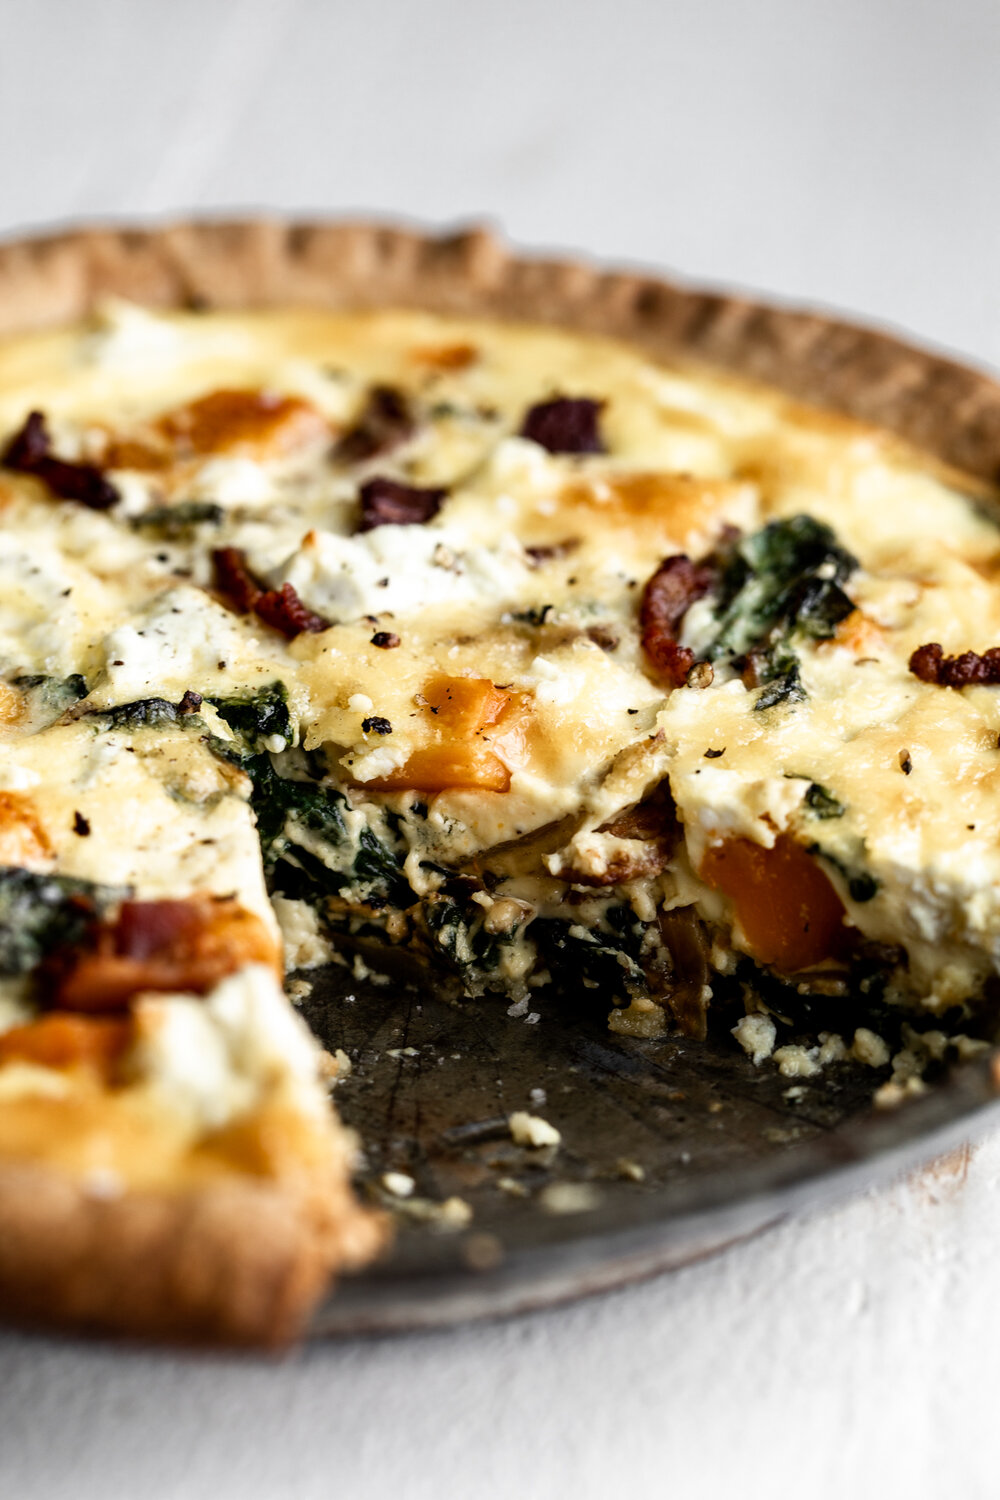 Easy quiche recipe made with store-bought quiche and seasonal fall ingredients of butternut squash, chard and bacon quiche for breakfast.